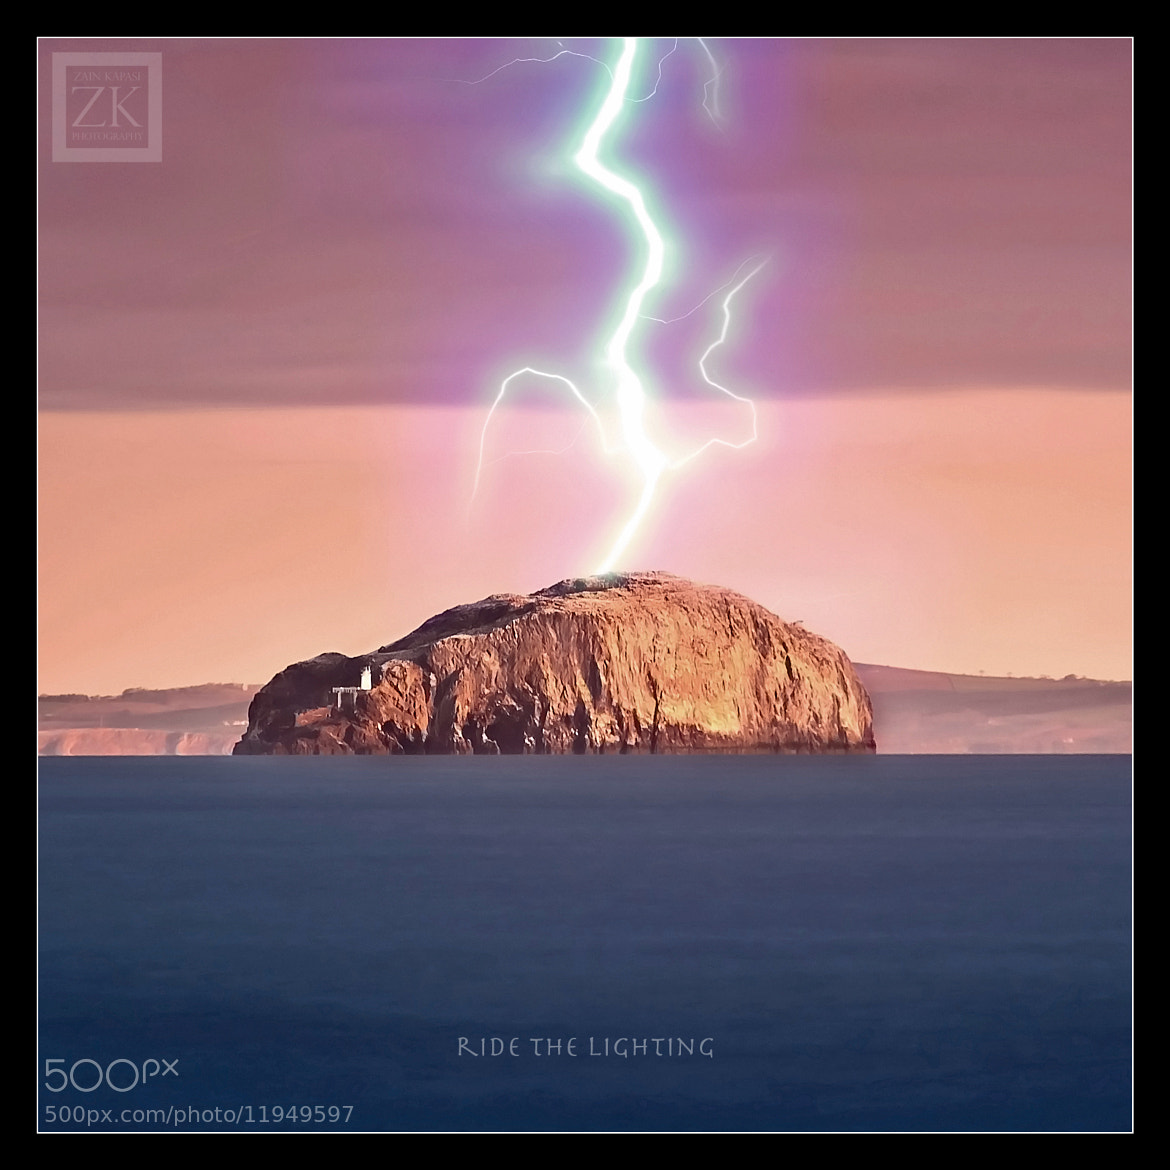 Photograph Ride the Lightning by Zain Kapasi on 500px